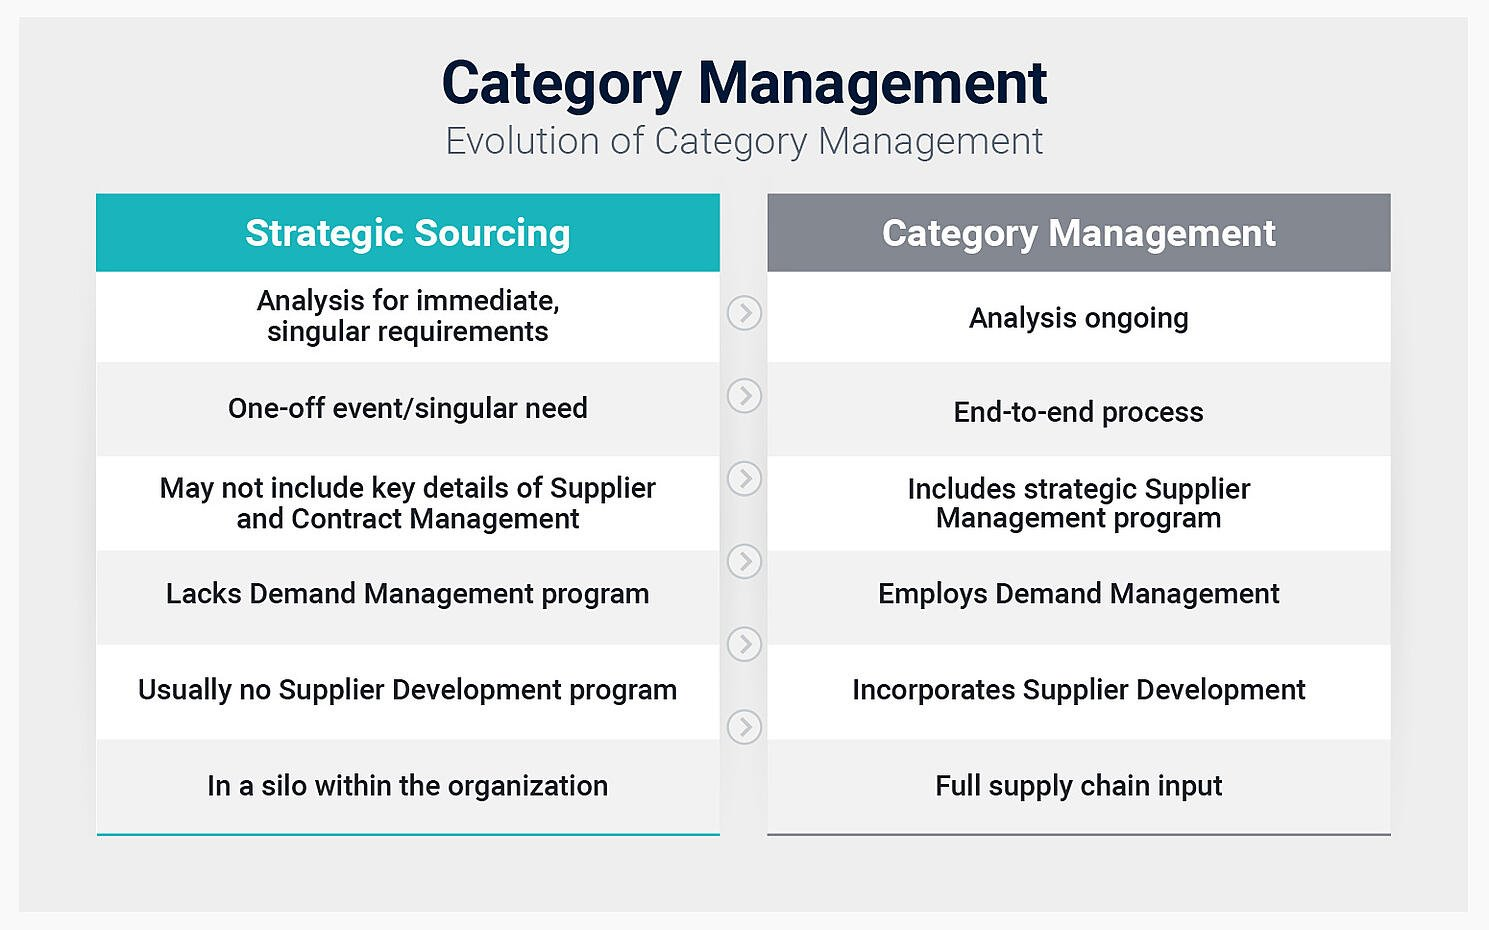 Category Management vs Strategic Sourcing